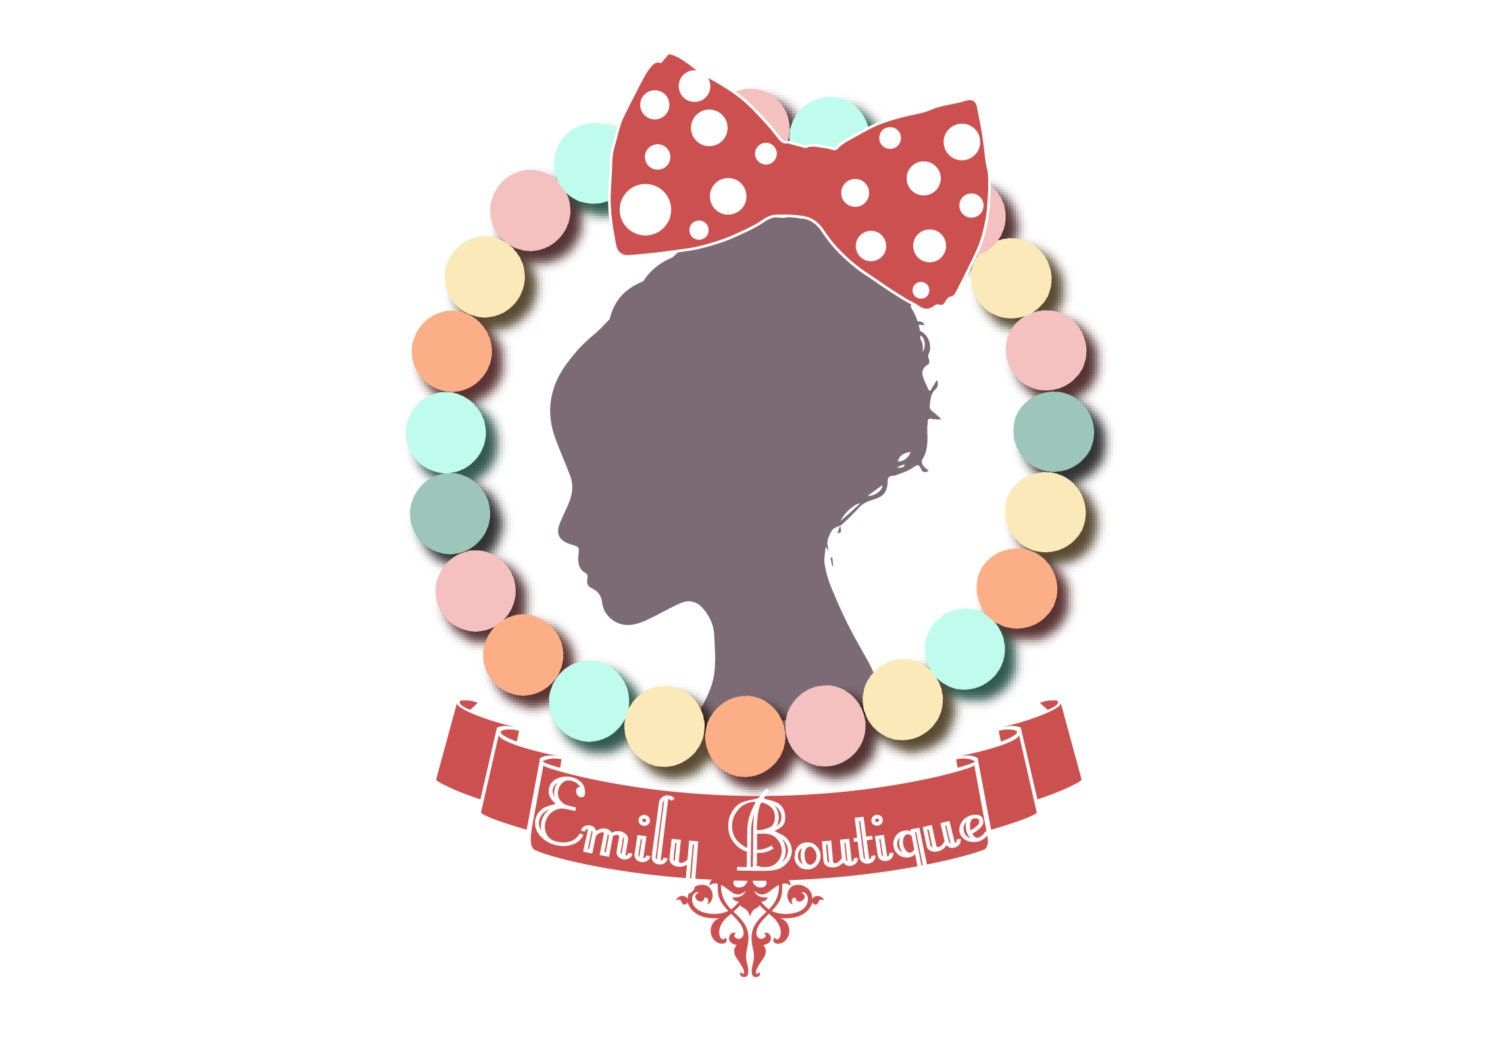 Custom logo design for handmade jewelry colorful beads logo